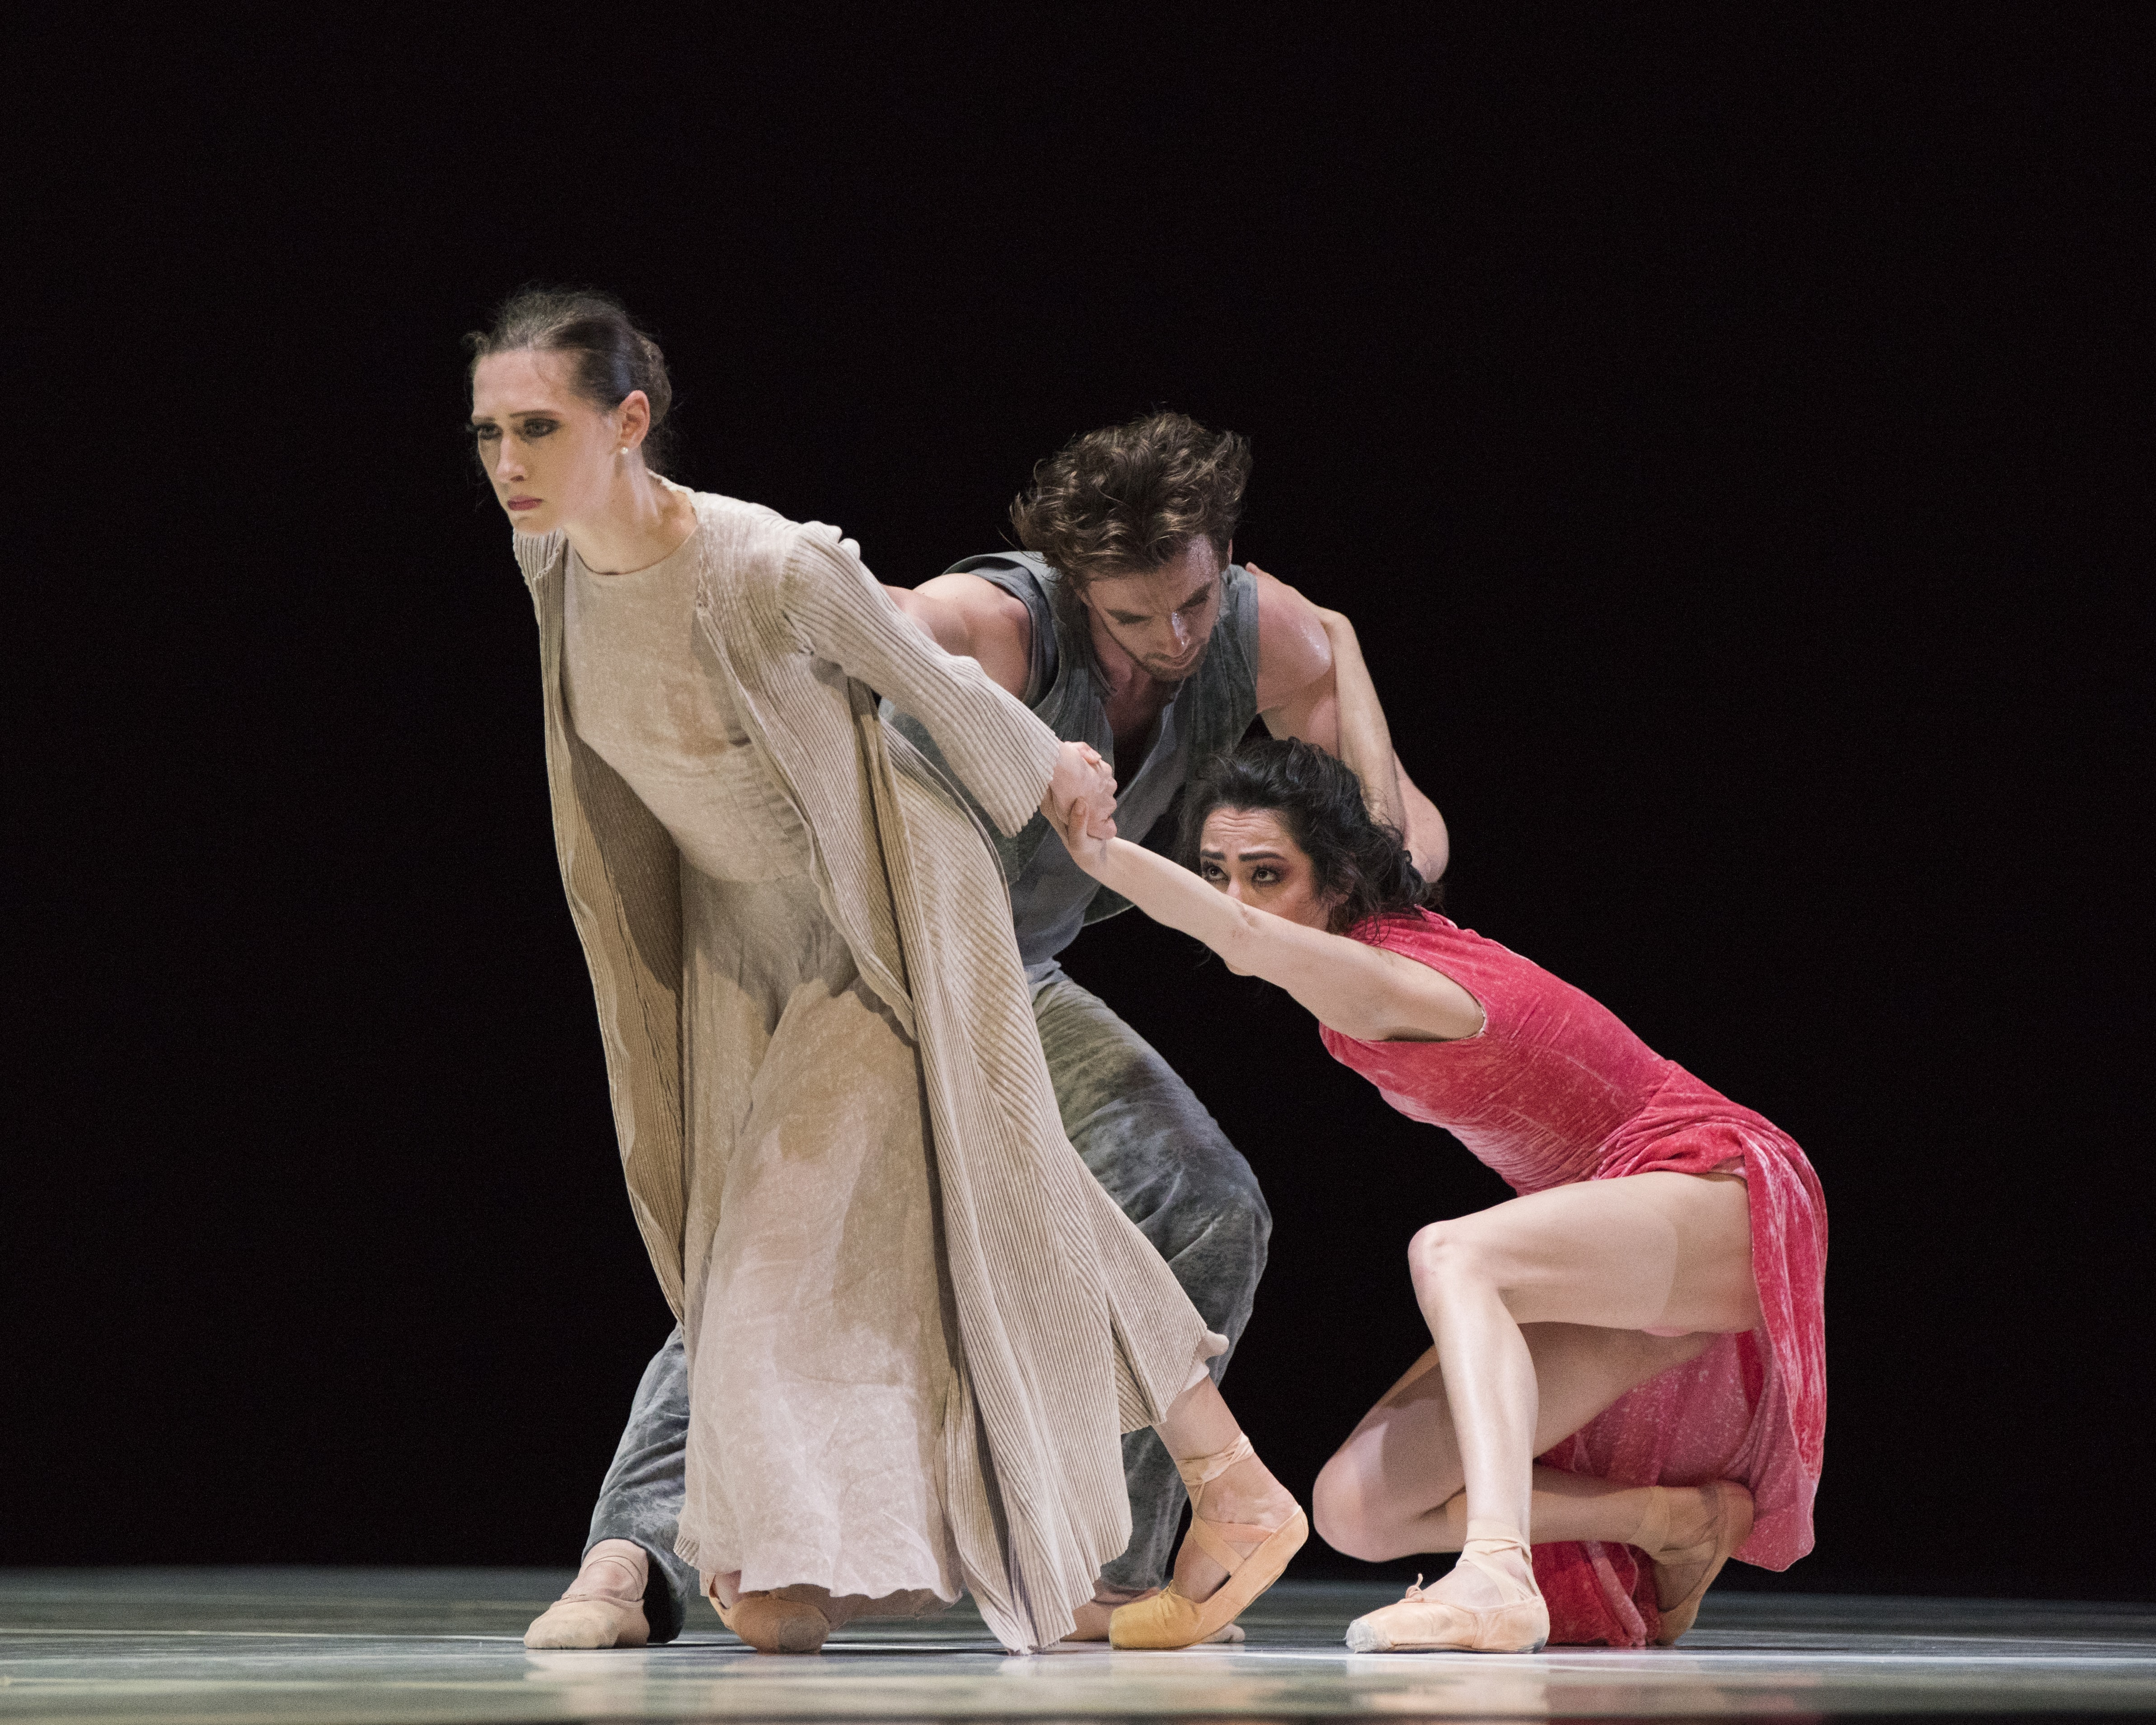 San Francisco Ballet performs Cathy Marston's Snowblind. Photo by Erik Tomasson.